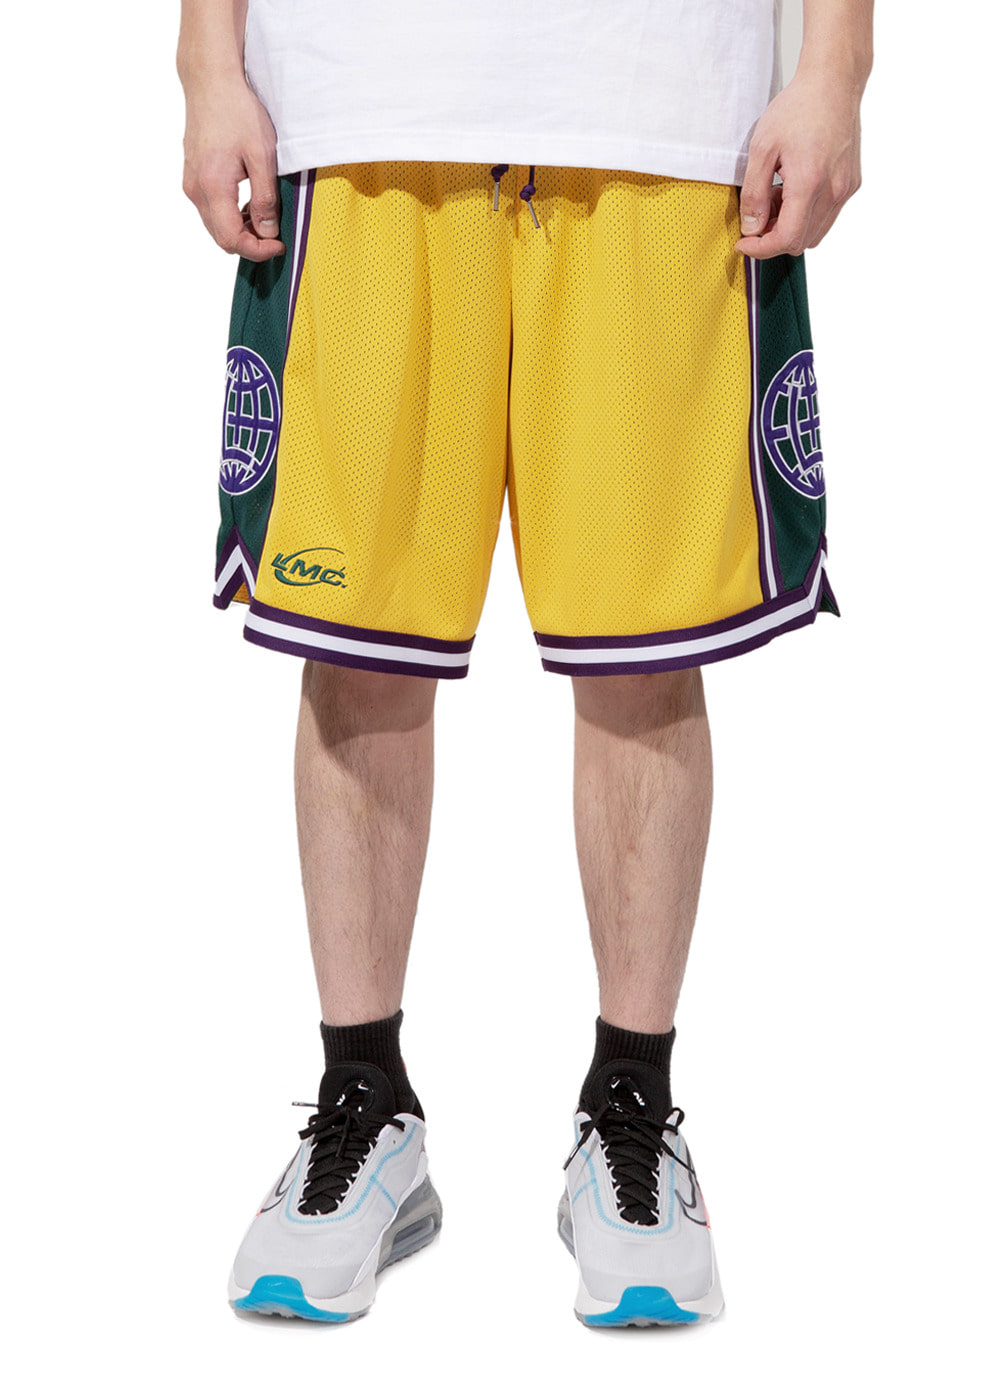 LMC BASKETBALL SHORTS yellow